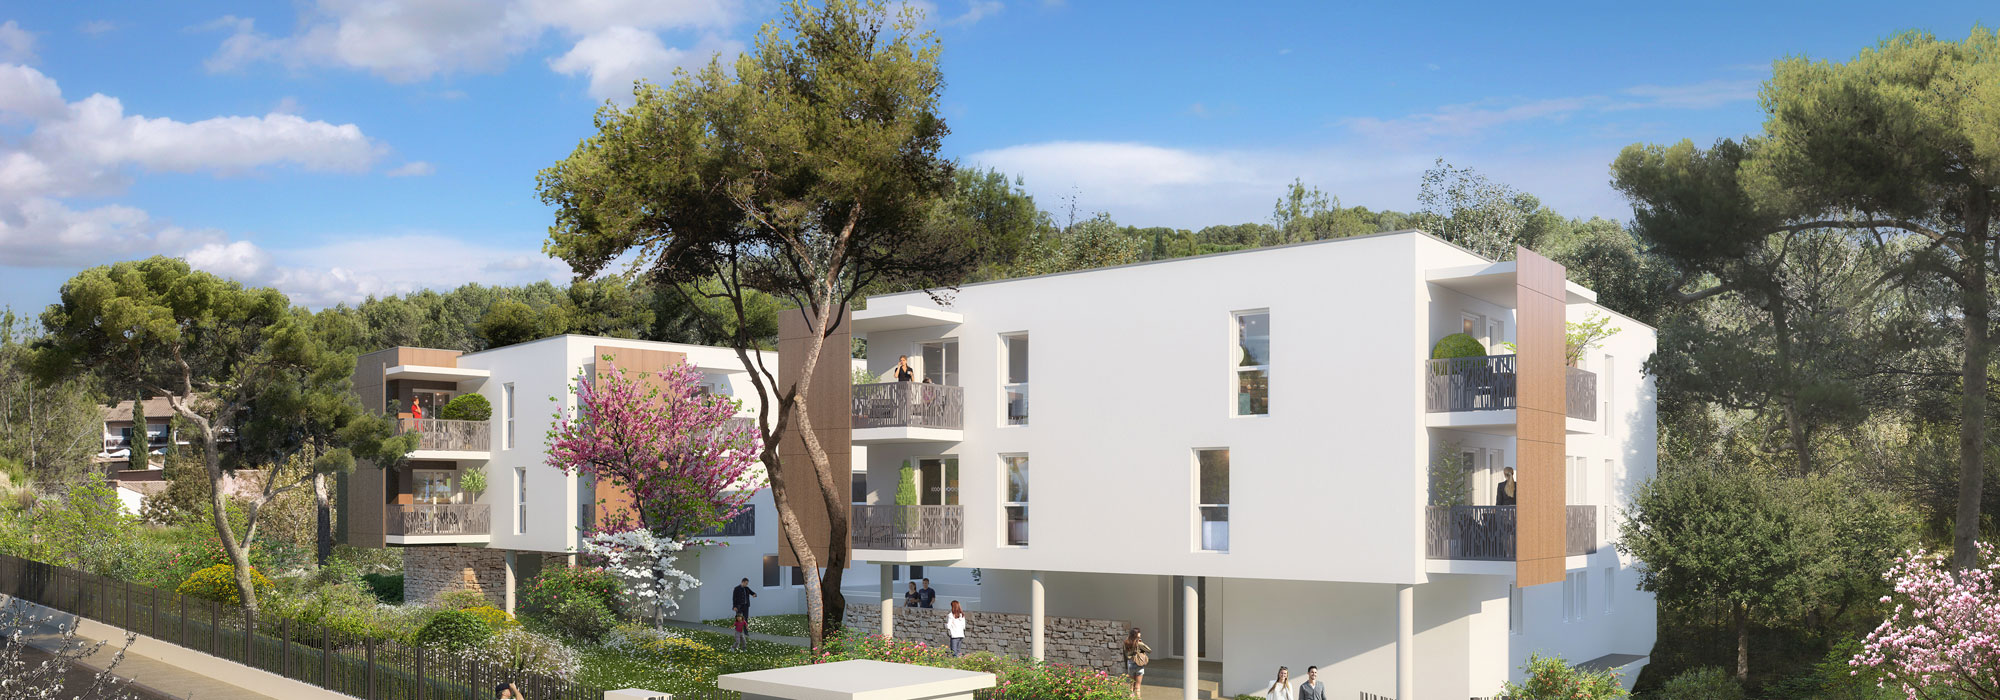 residence-ideom-immersia-clapiers